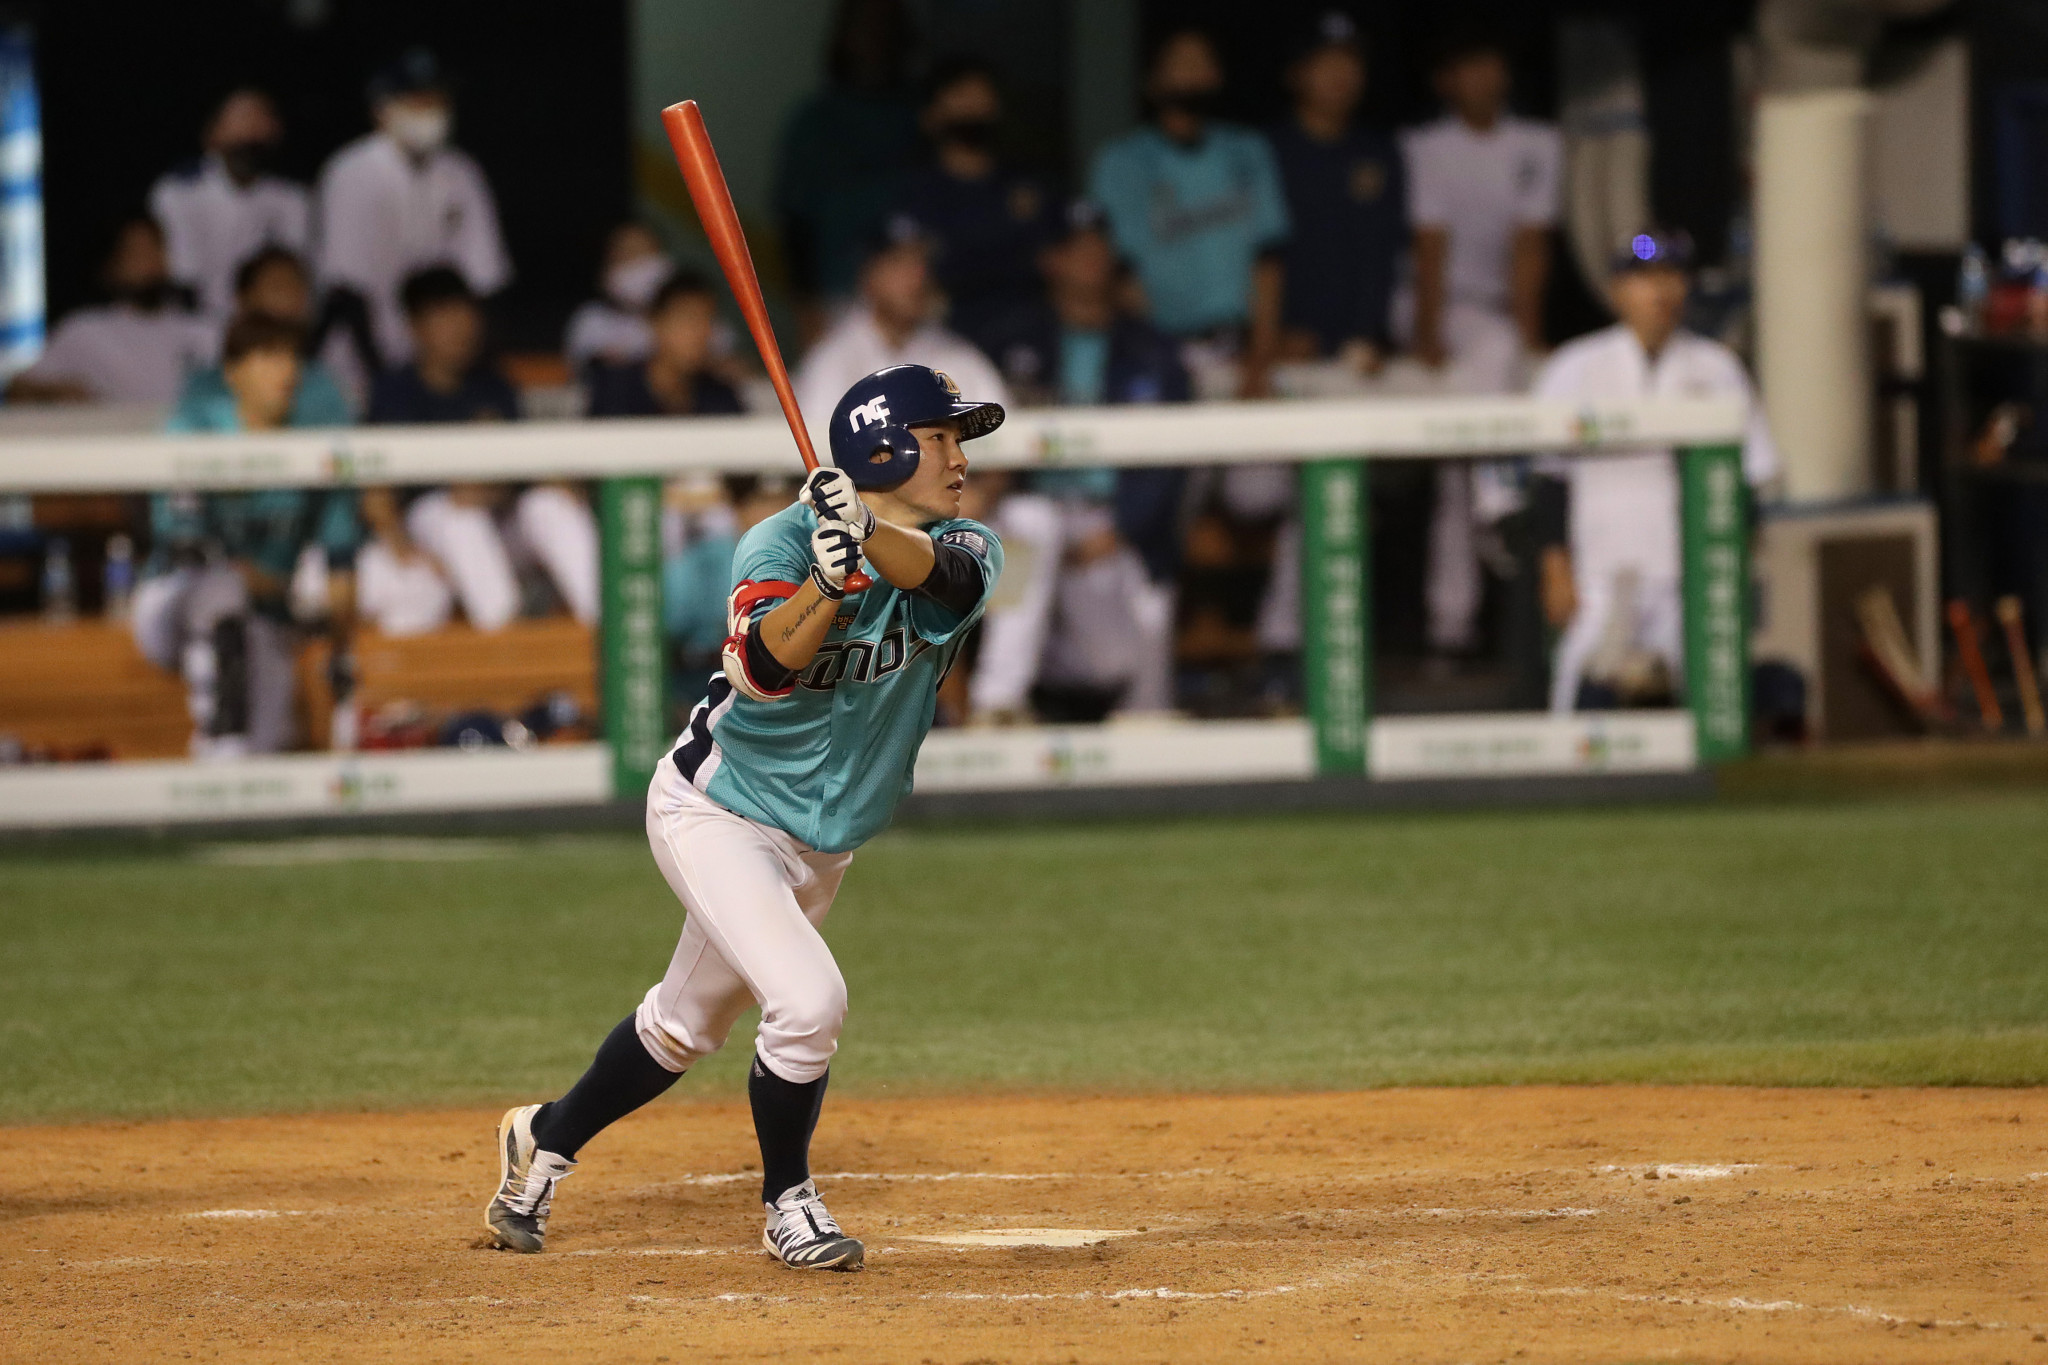 South Korean baseball pair pull out of Tokyo 2020 after breaking social distancing rules